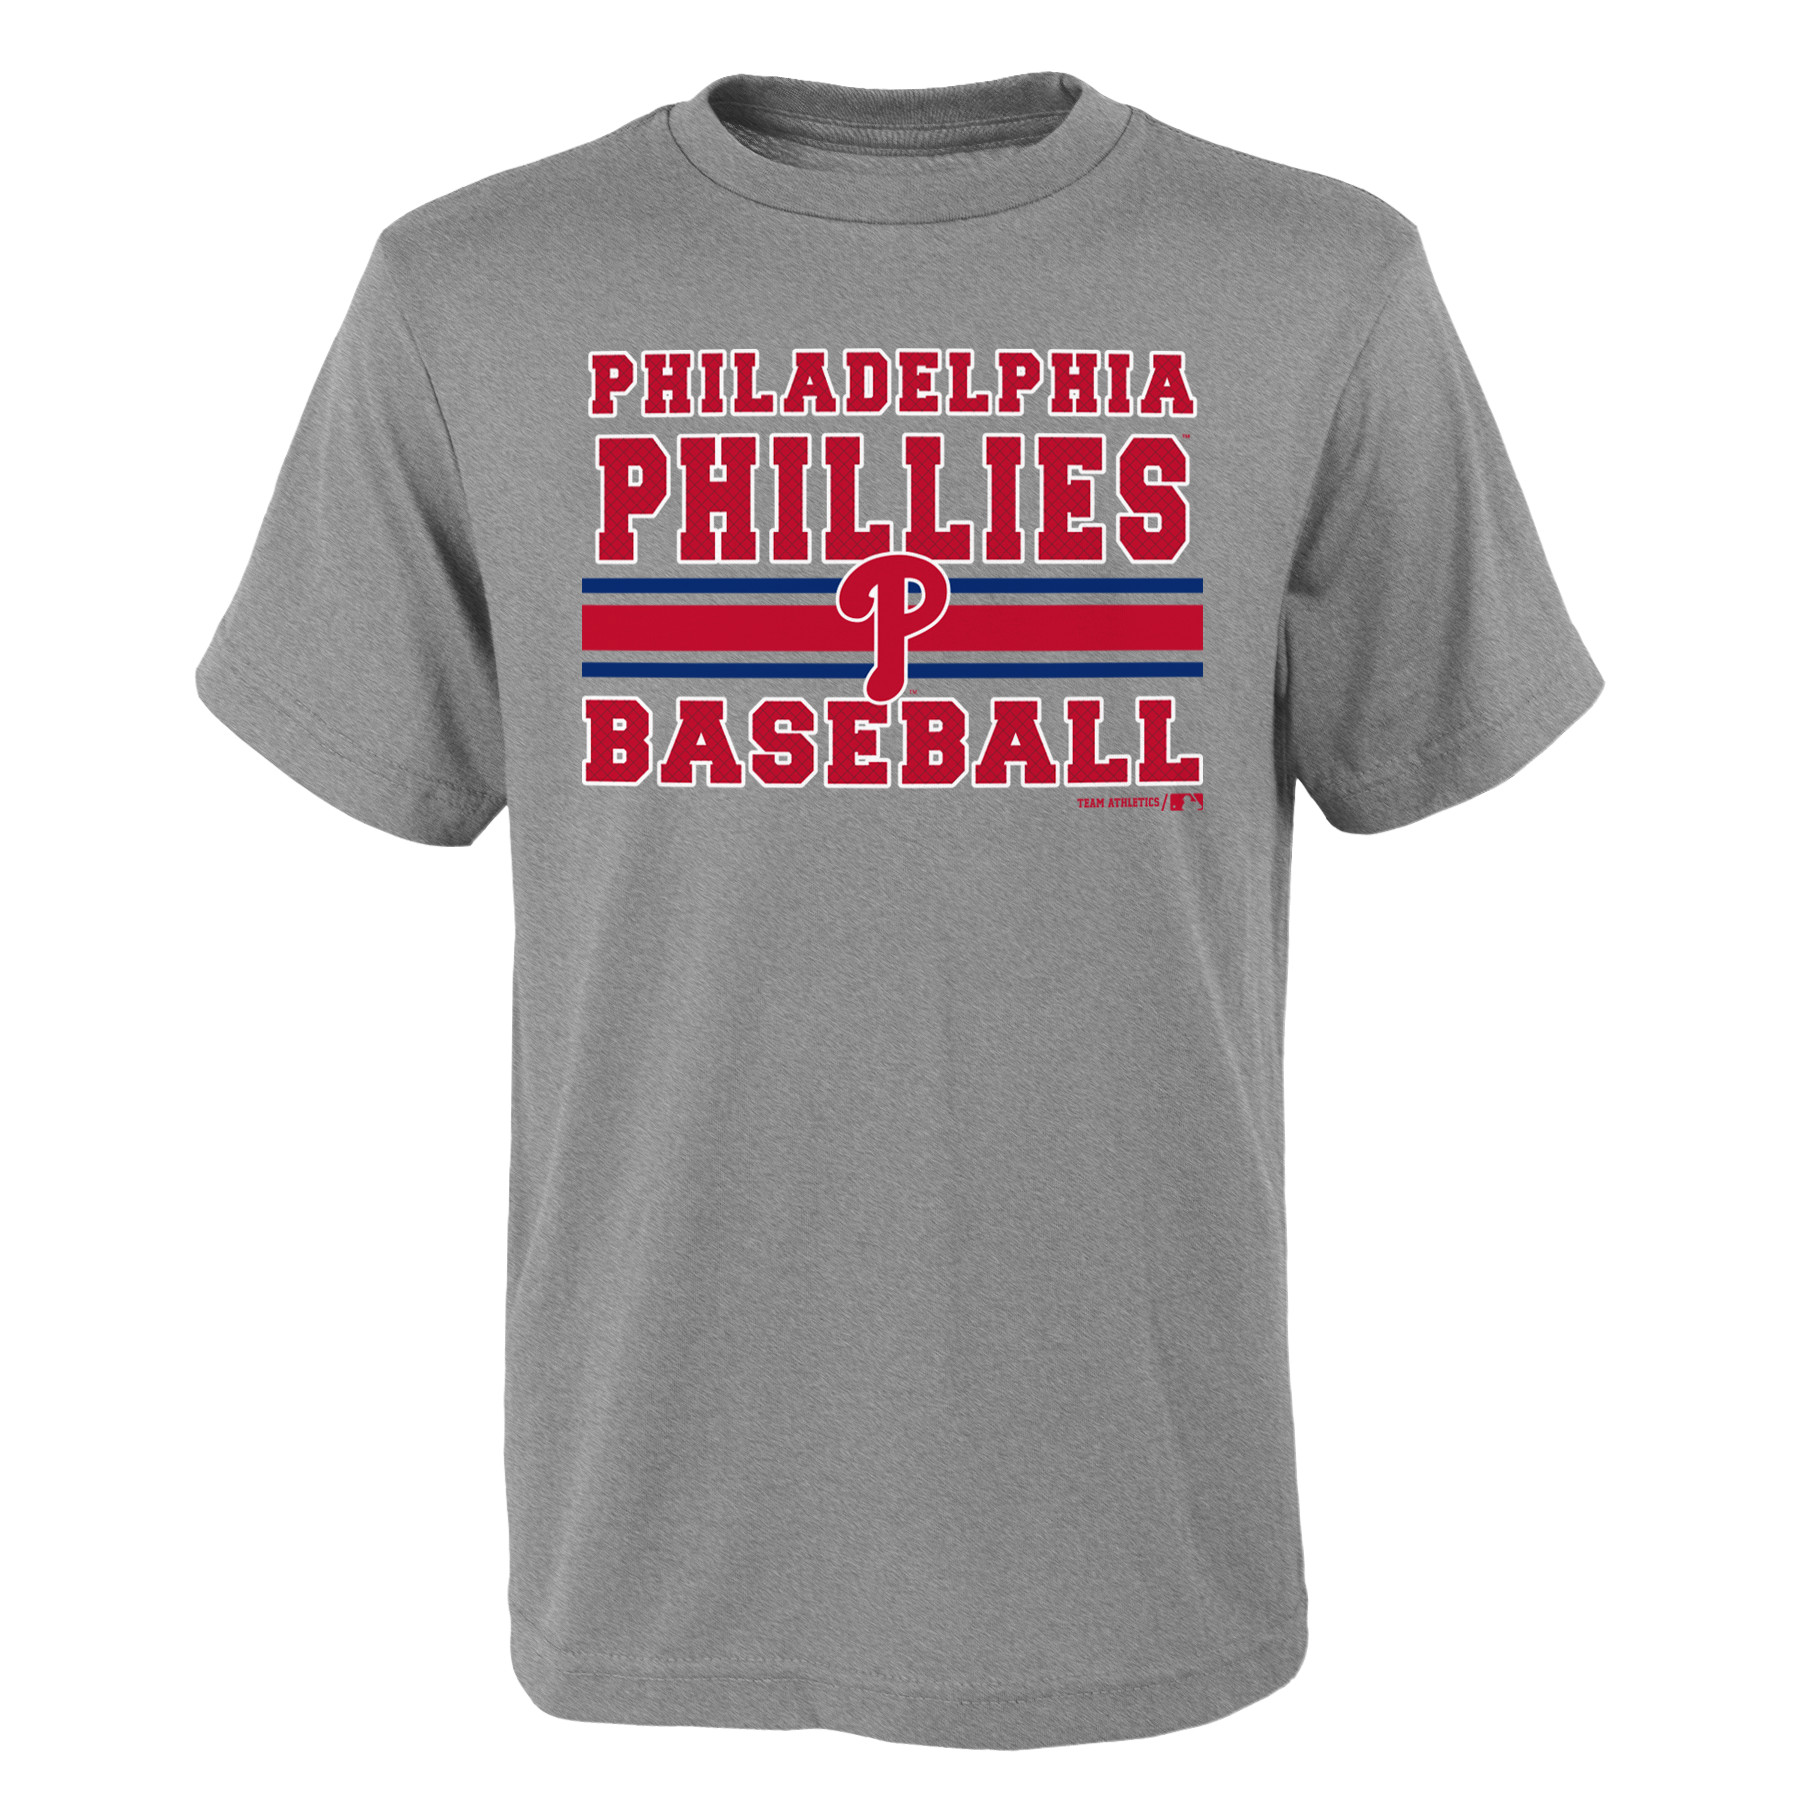 MLB Philadephia PHILLIES TEE Short Sleeve Boys OPP 90% Cotton 10% Polyester Gray Team Tee 4-18